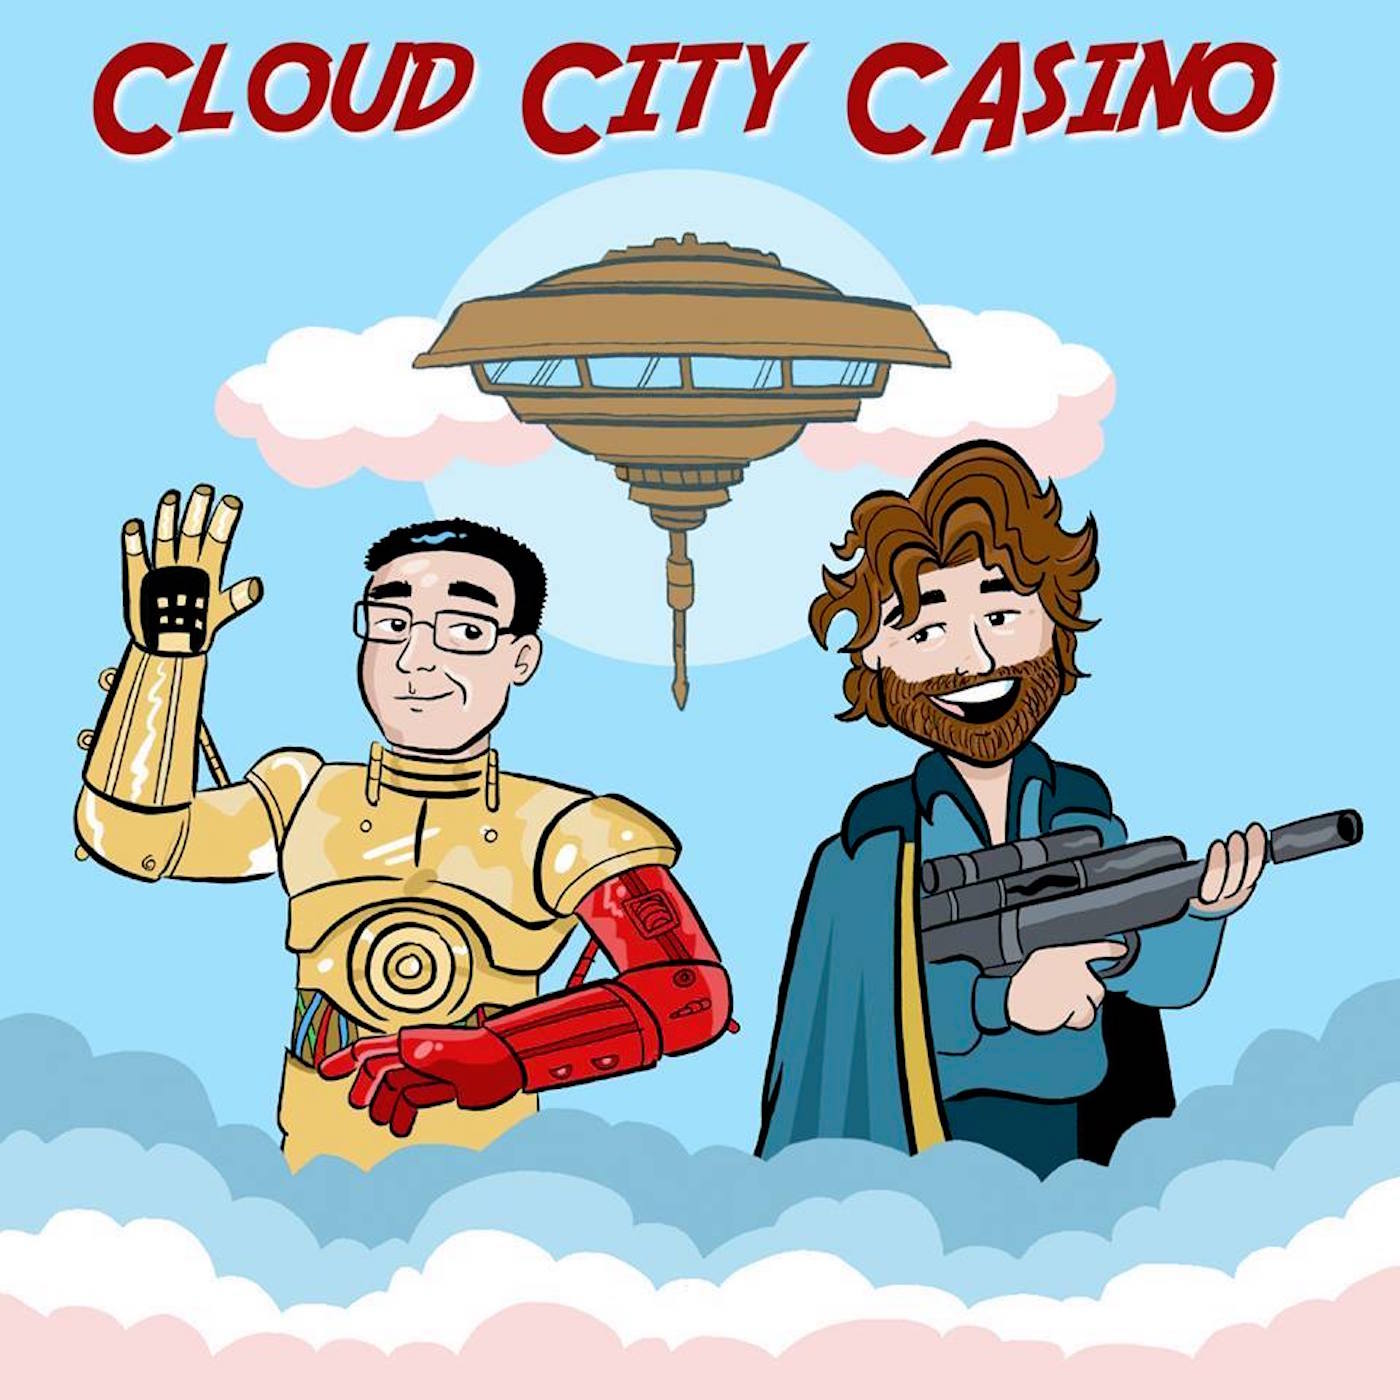 Cloud City Casino - YOUR Star Wars Gaming podcast